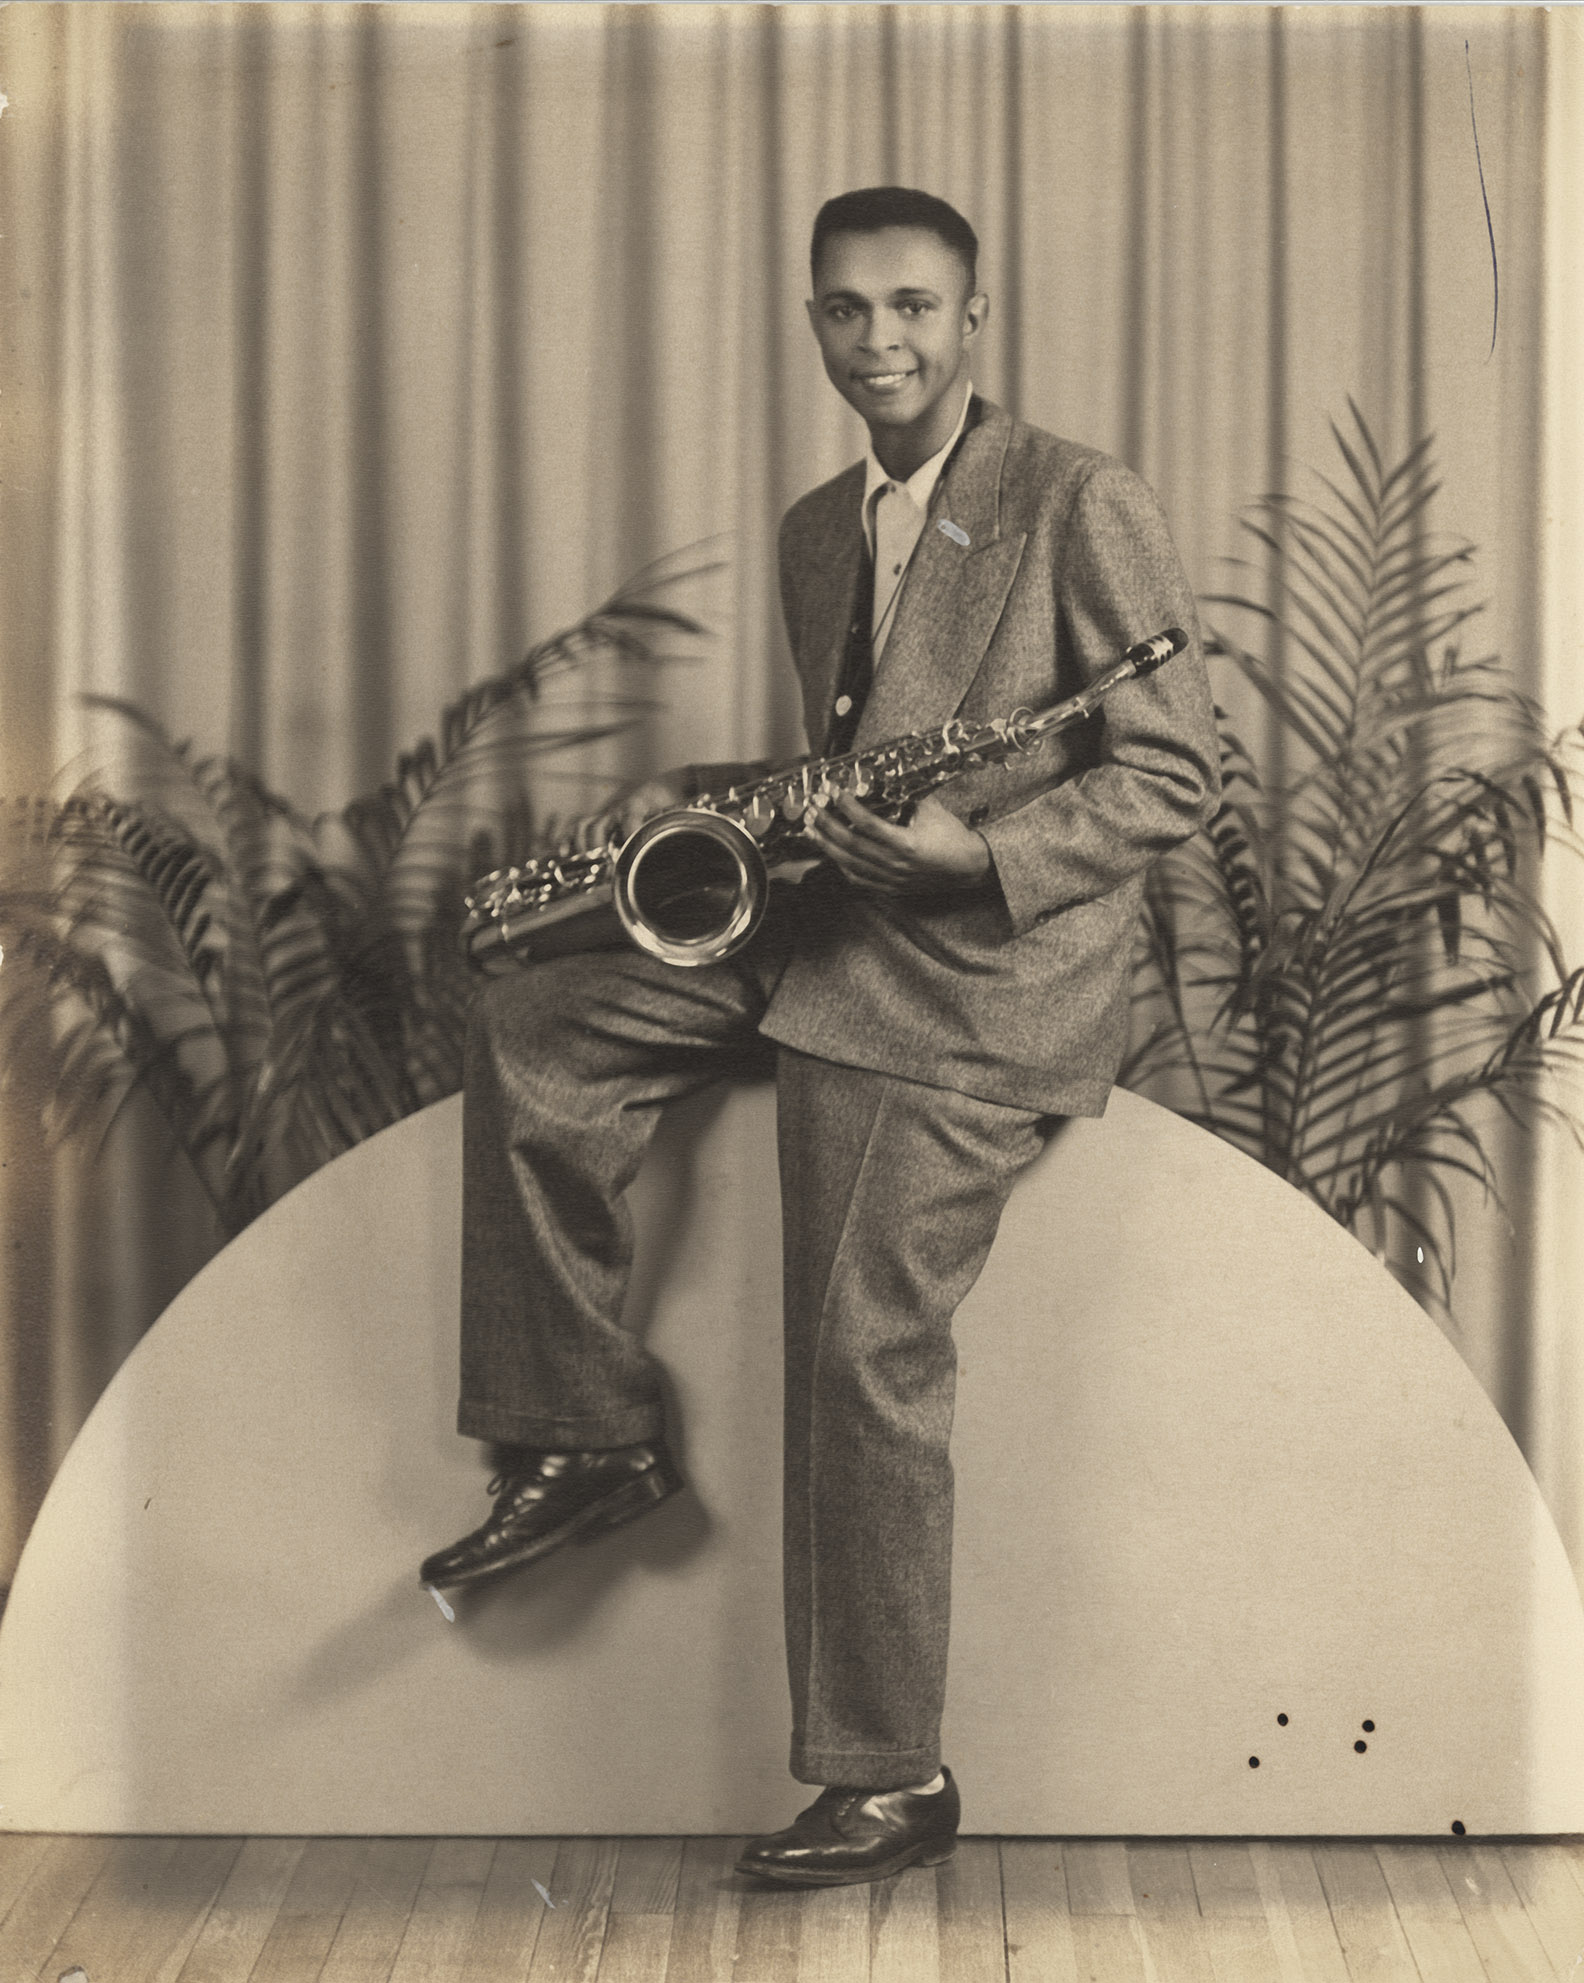 Image of Tiyo Atallah Salah-El playing saxophone in high school